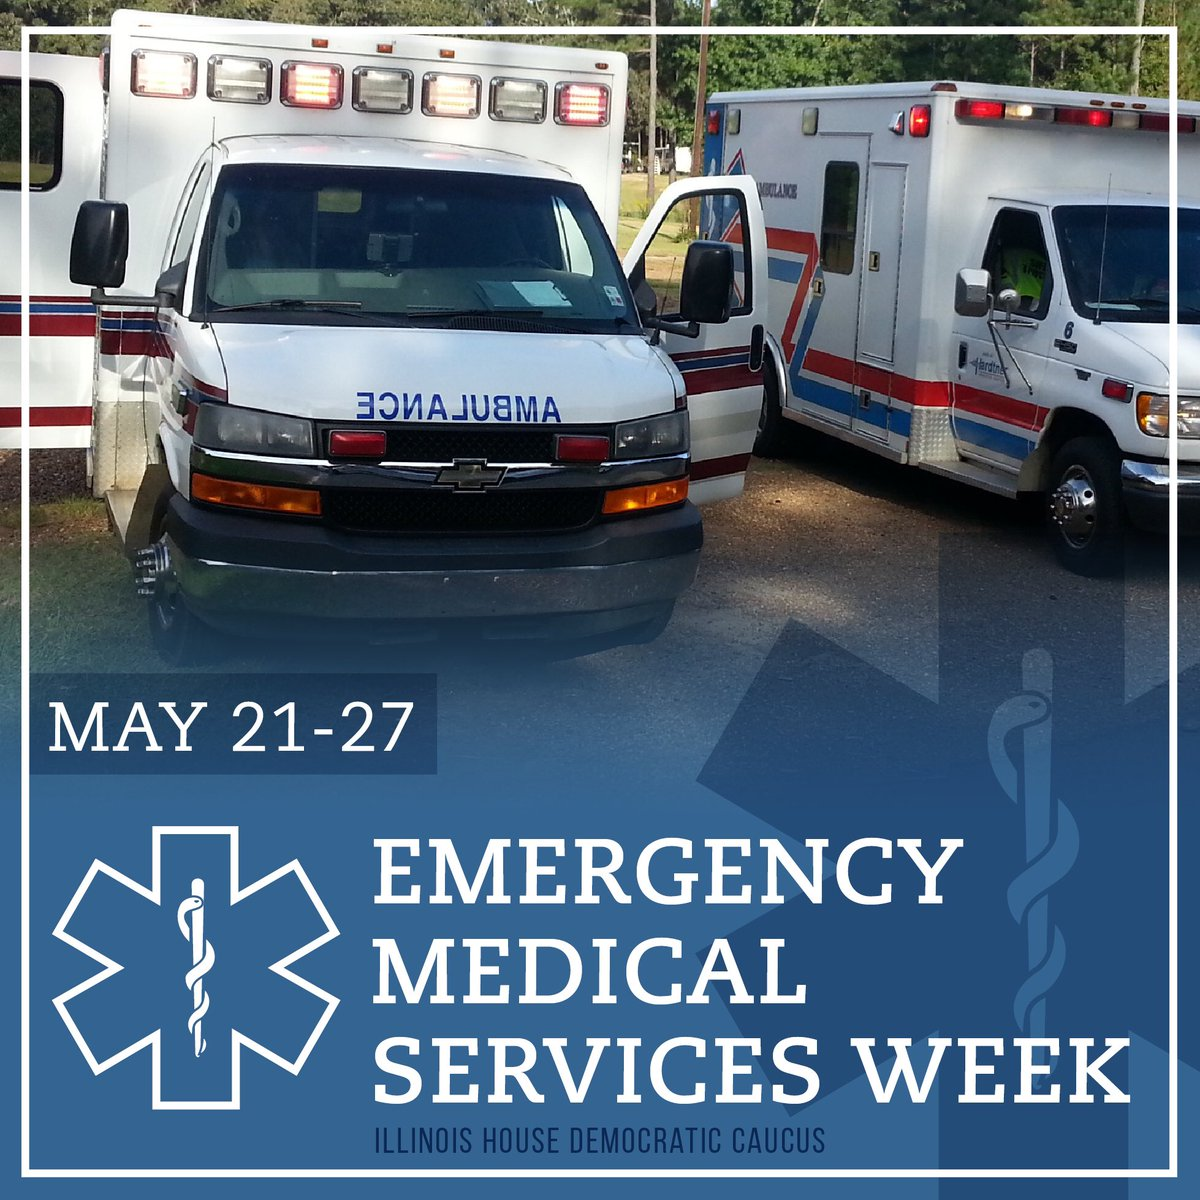 test Twitter Media - May 22 - 26 is National Emergency Medical Services Week. RT to show your appreciation to EMS providers in our community! #EMSWeek https://t.co/WrcuundBNl